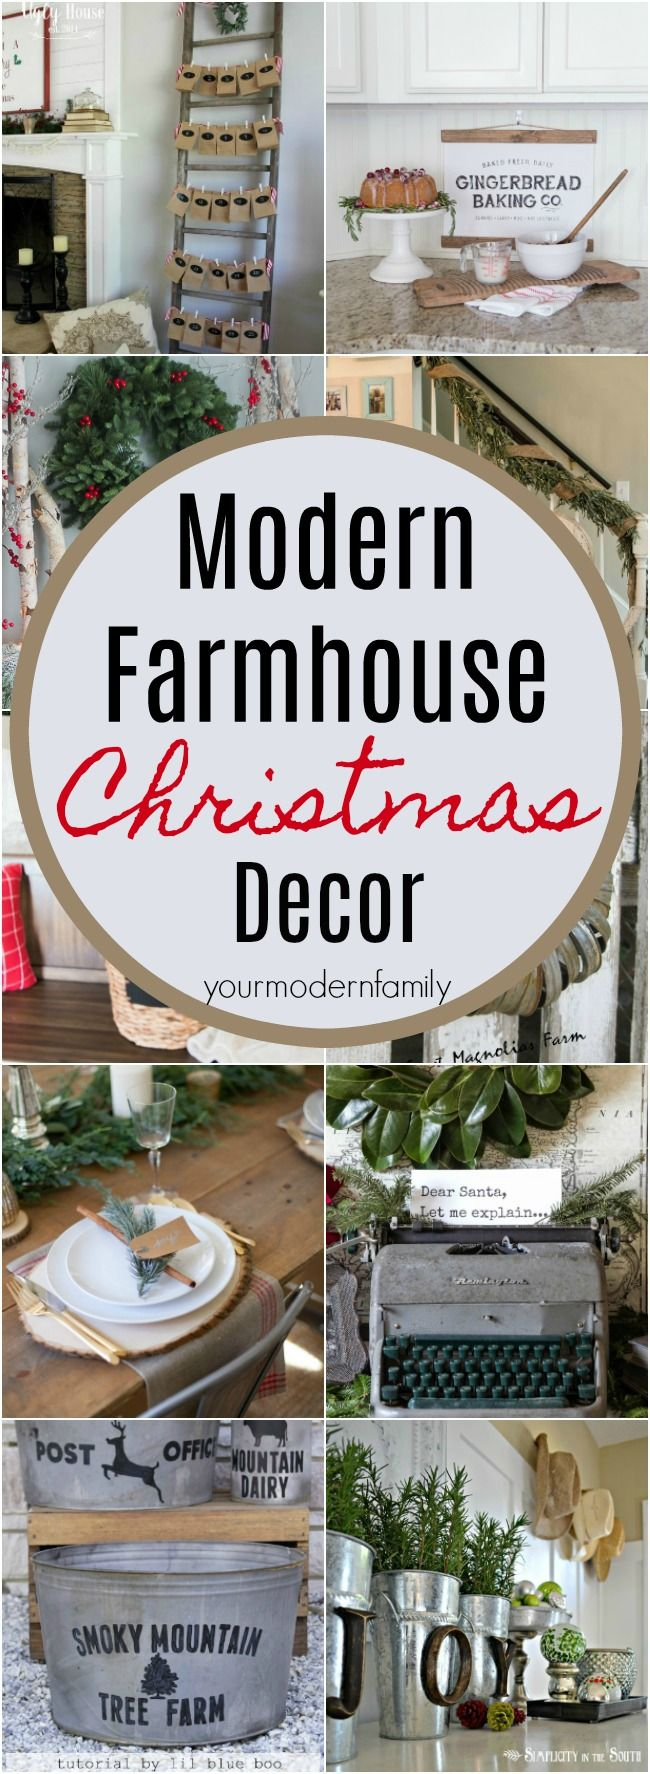 These are THE BEST Modern Farmhouse Christmas Decor ideas I've found online.    The Fixer Upper Style Christmas staircases, Rustic Christmas living rooms, and an all-over Modern Farmhouse look are so cozy, calm and welcoming ... #FarmhouseChristmas #FixerUpper #JoannaGaines #ChristmasDecor  via @BeckyMans